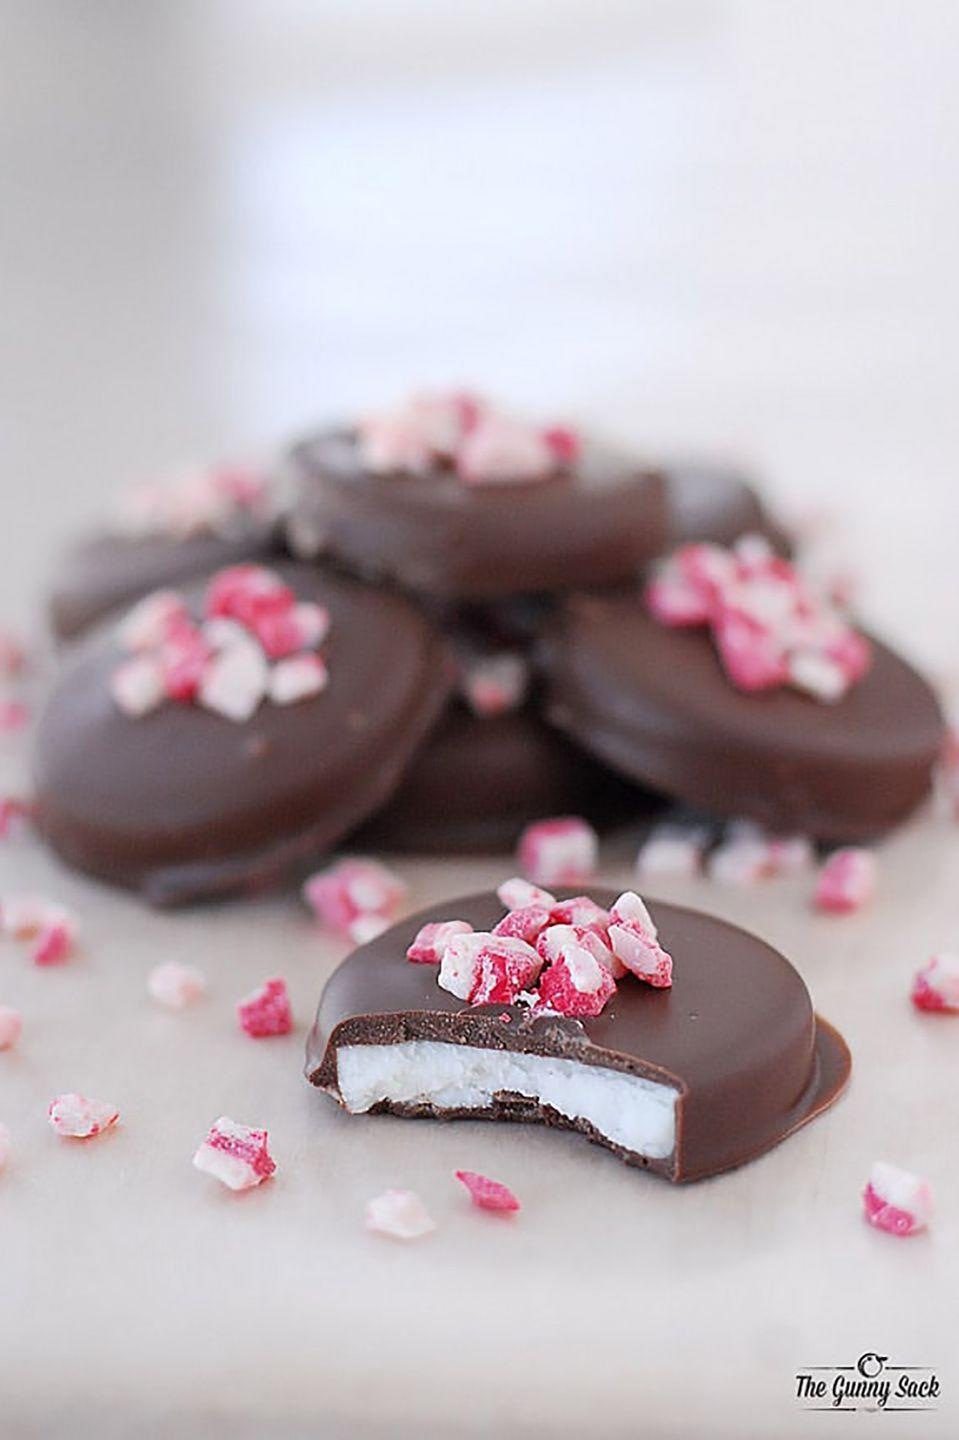 """<p>These homemade peppermint patties get a dose of Christmas cheer from crushed candy canes sprinkled on top.</p><p><strong>Get the recipe at <a href=""""http://www.thegunnysack.com/peppermint-patties-recipe-and-a-giveaway-from-country-door/"""" rel=""""nofollow noopener"""" target=""""_blank"""" data-ylk=""""slk:The Gunny Sack"""" class=""""link rapid-noclick-resp"""">The Gunny Sack</a>.</strong> </p>"""